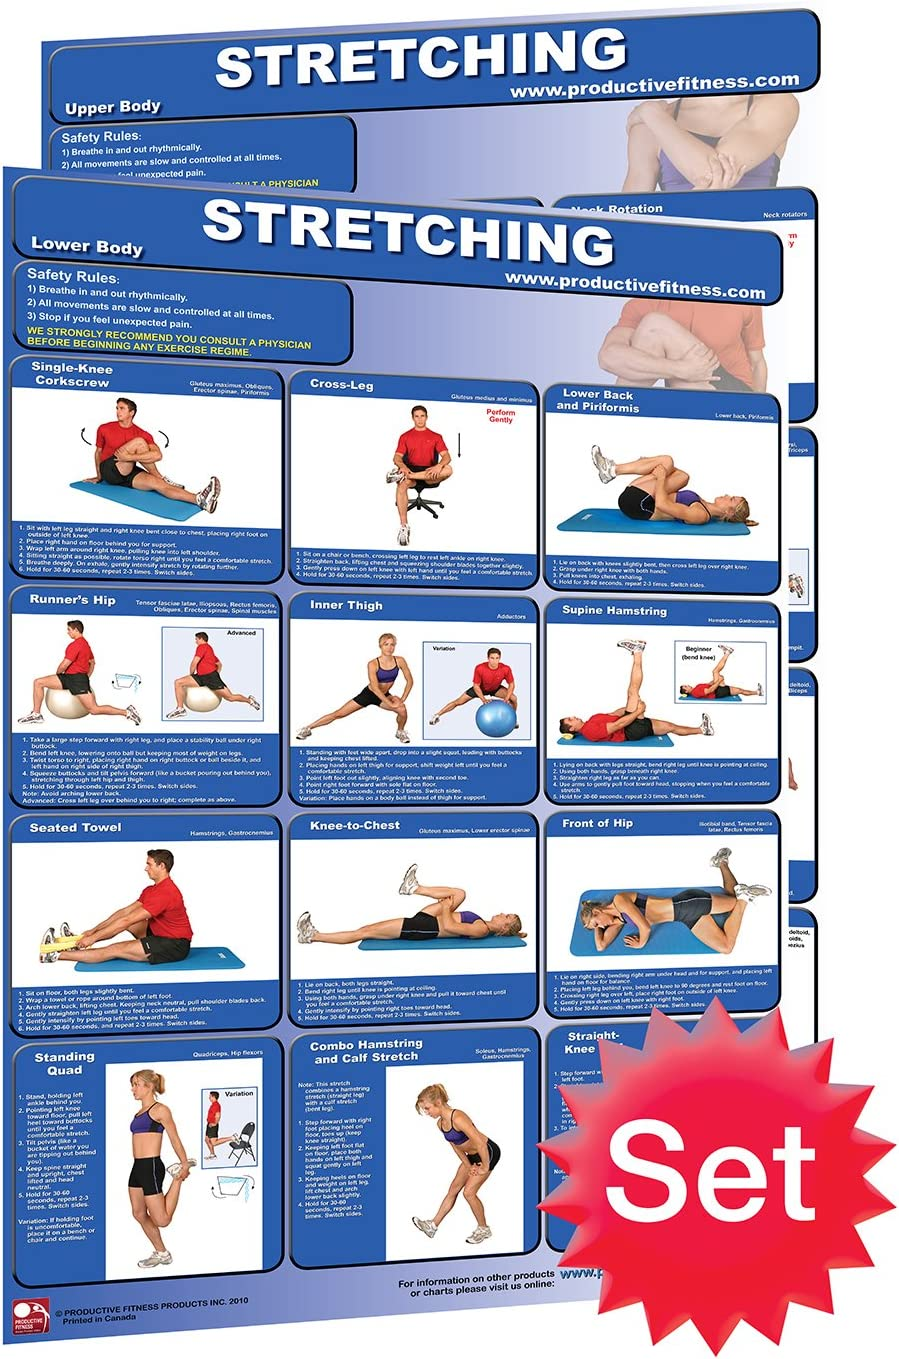 1926534700 Stretching Poster Set of 2 Laminated Poster/Charts; How to Stretch - Improve Flexibility - Range of Motion - Full Body Stretching - Relieve Back Pain - Stretching for Beginners 81htEdFBWSL